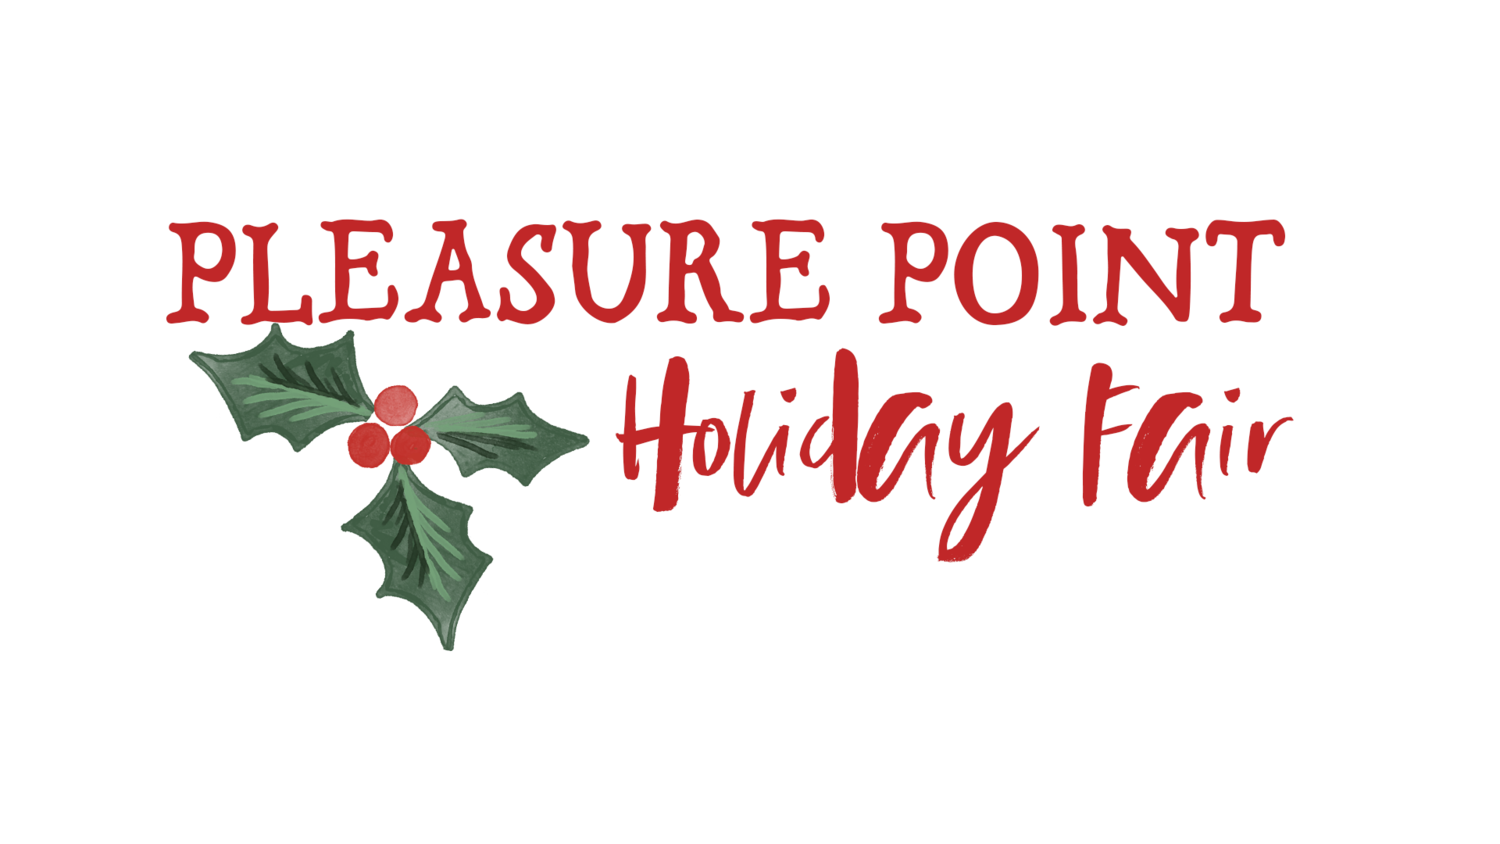 Pleasure Point Holiday Fair